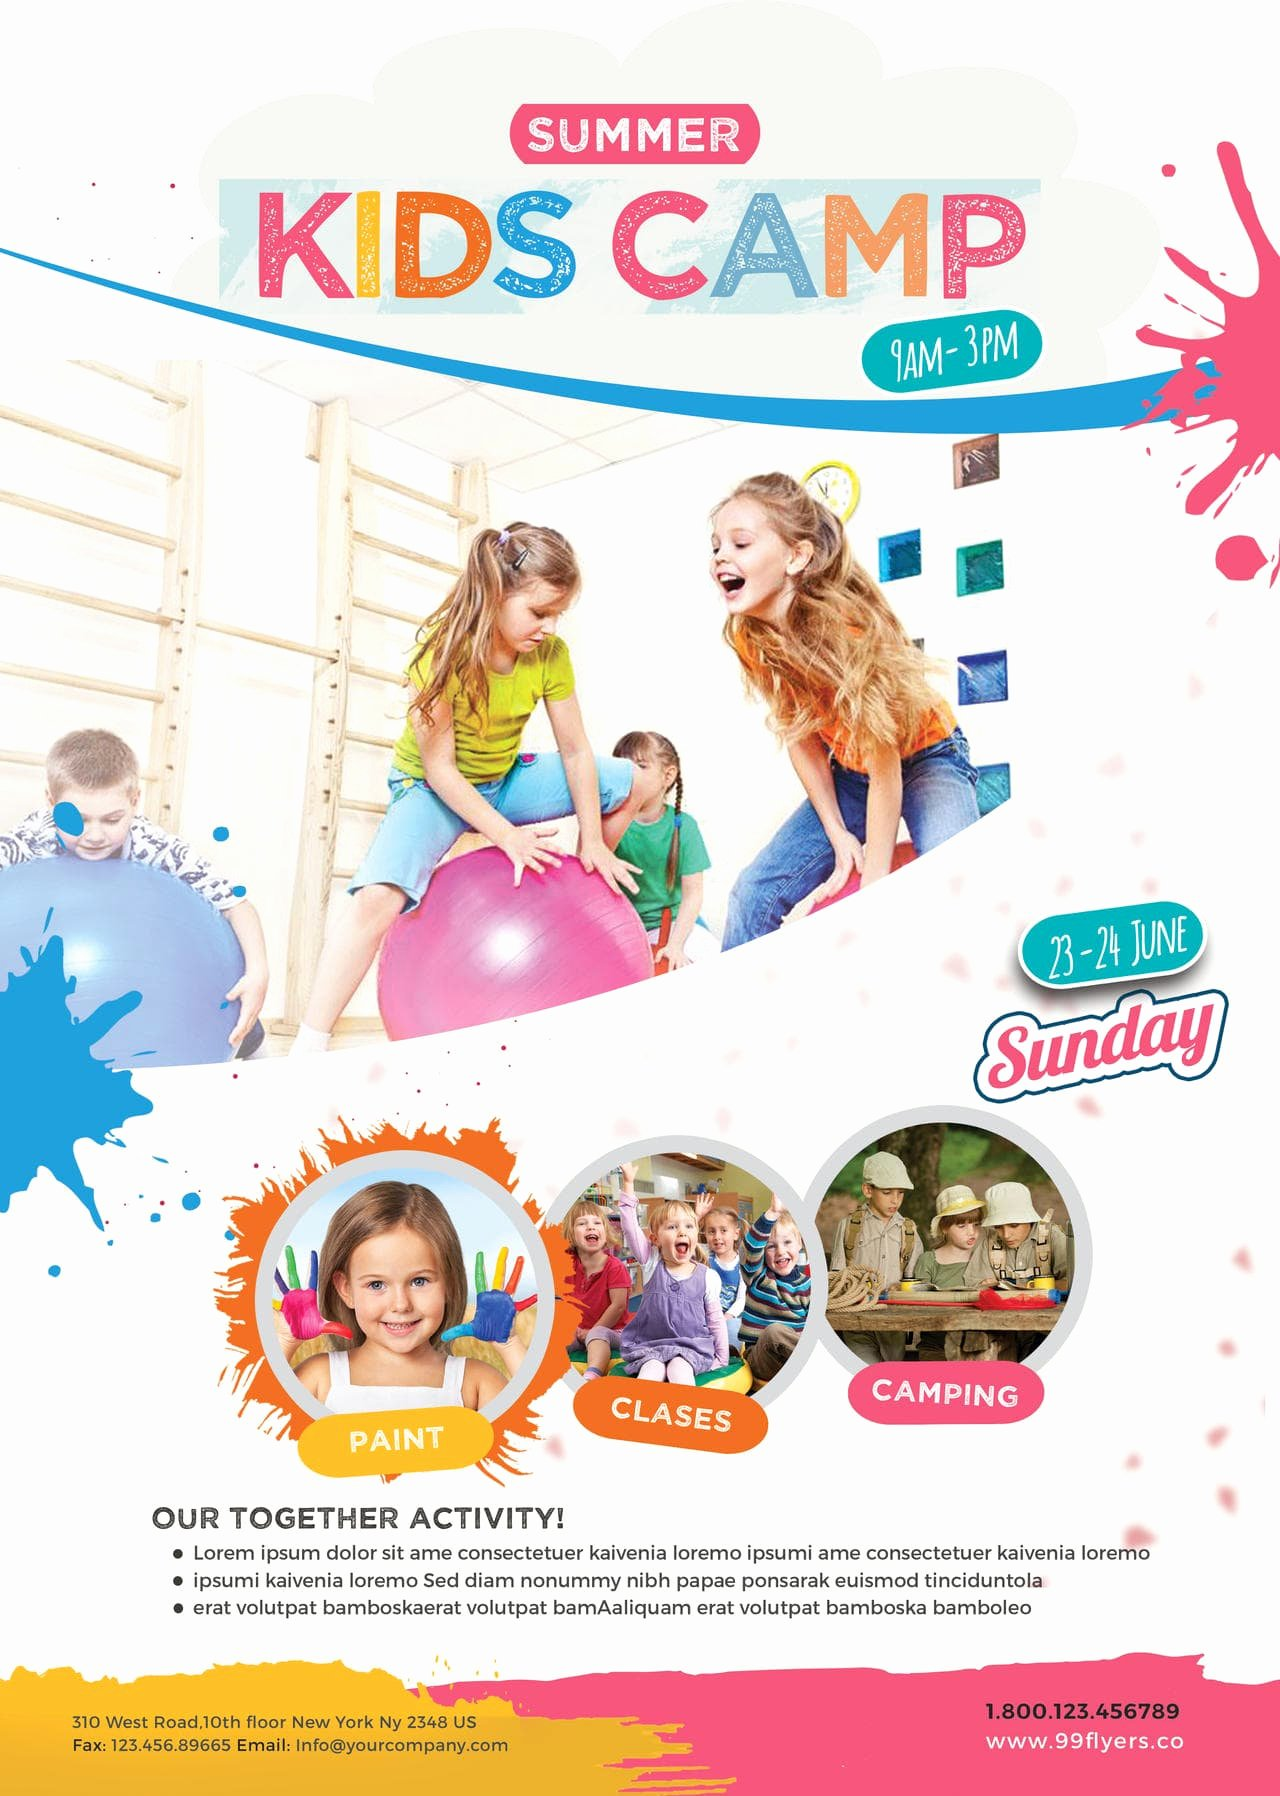 Summer Camp Flyer Template Free Unique Kids Summer Camp Free Psd Flyer Template Free Psd Flyer